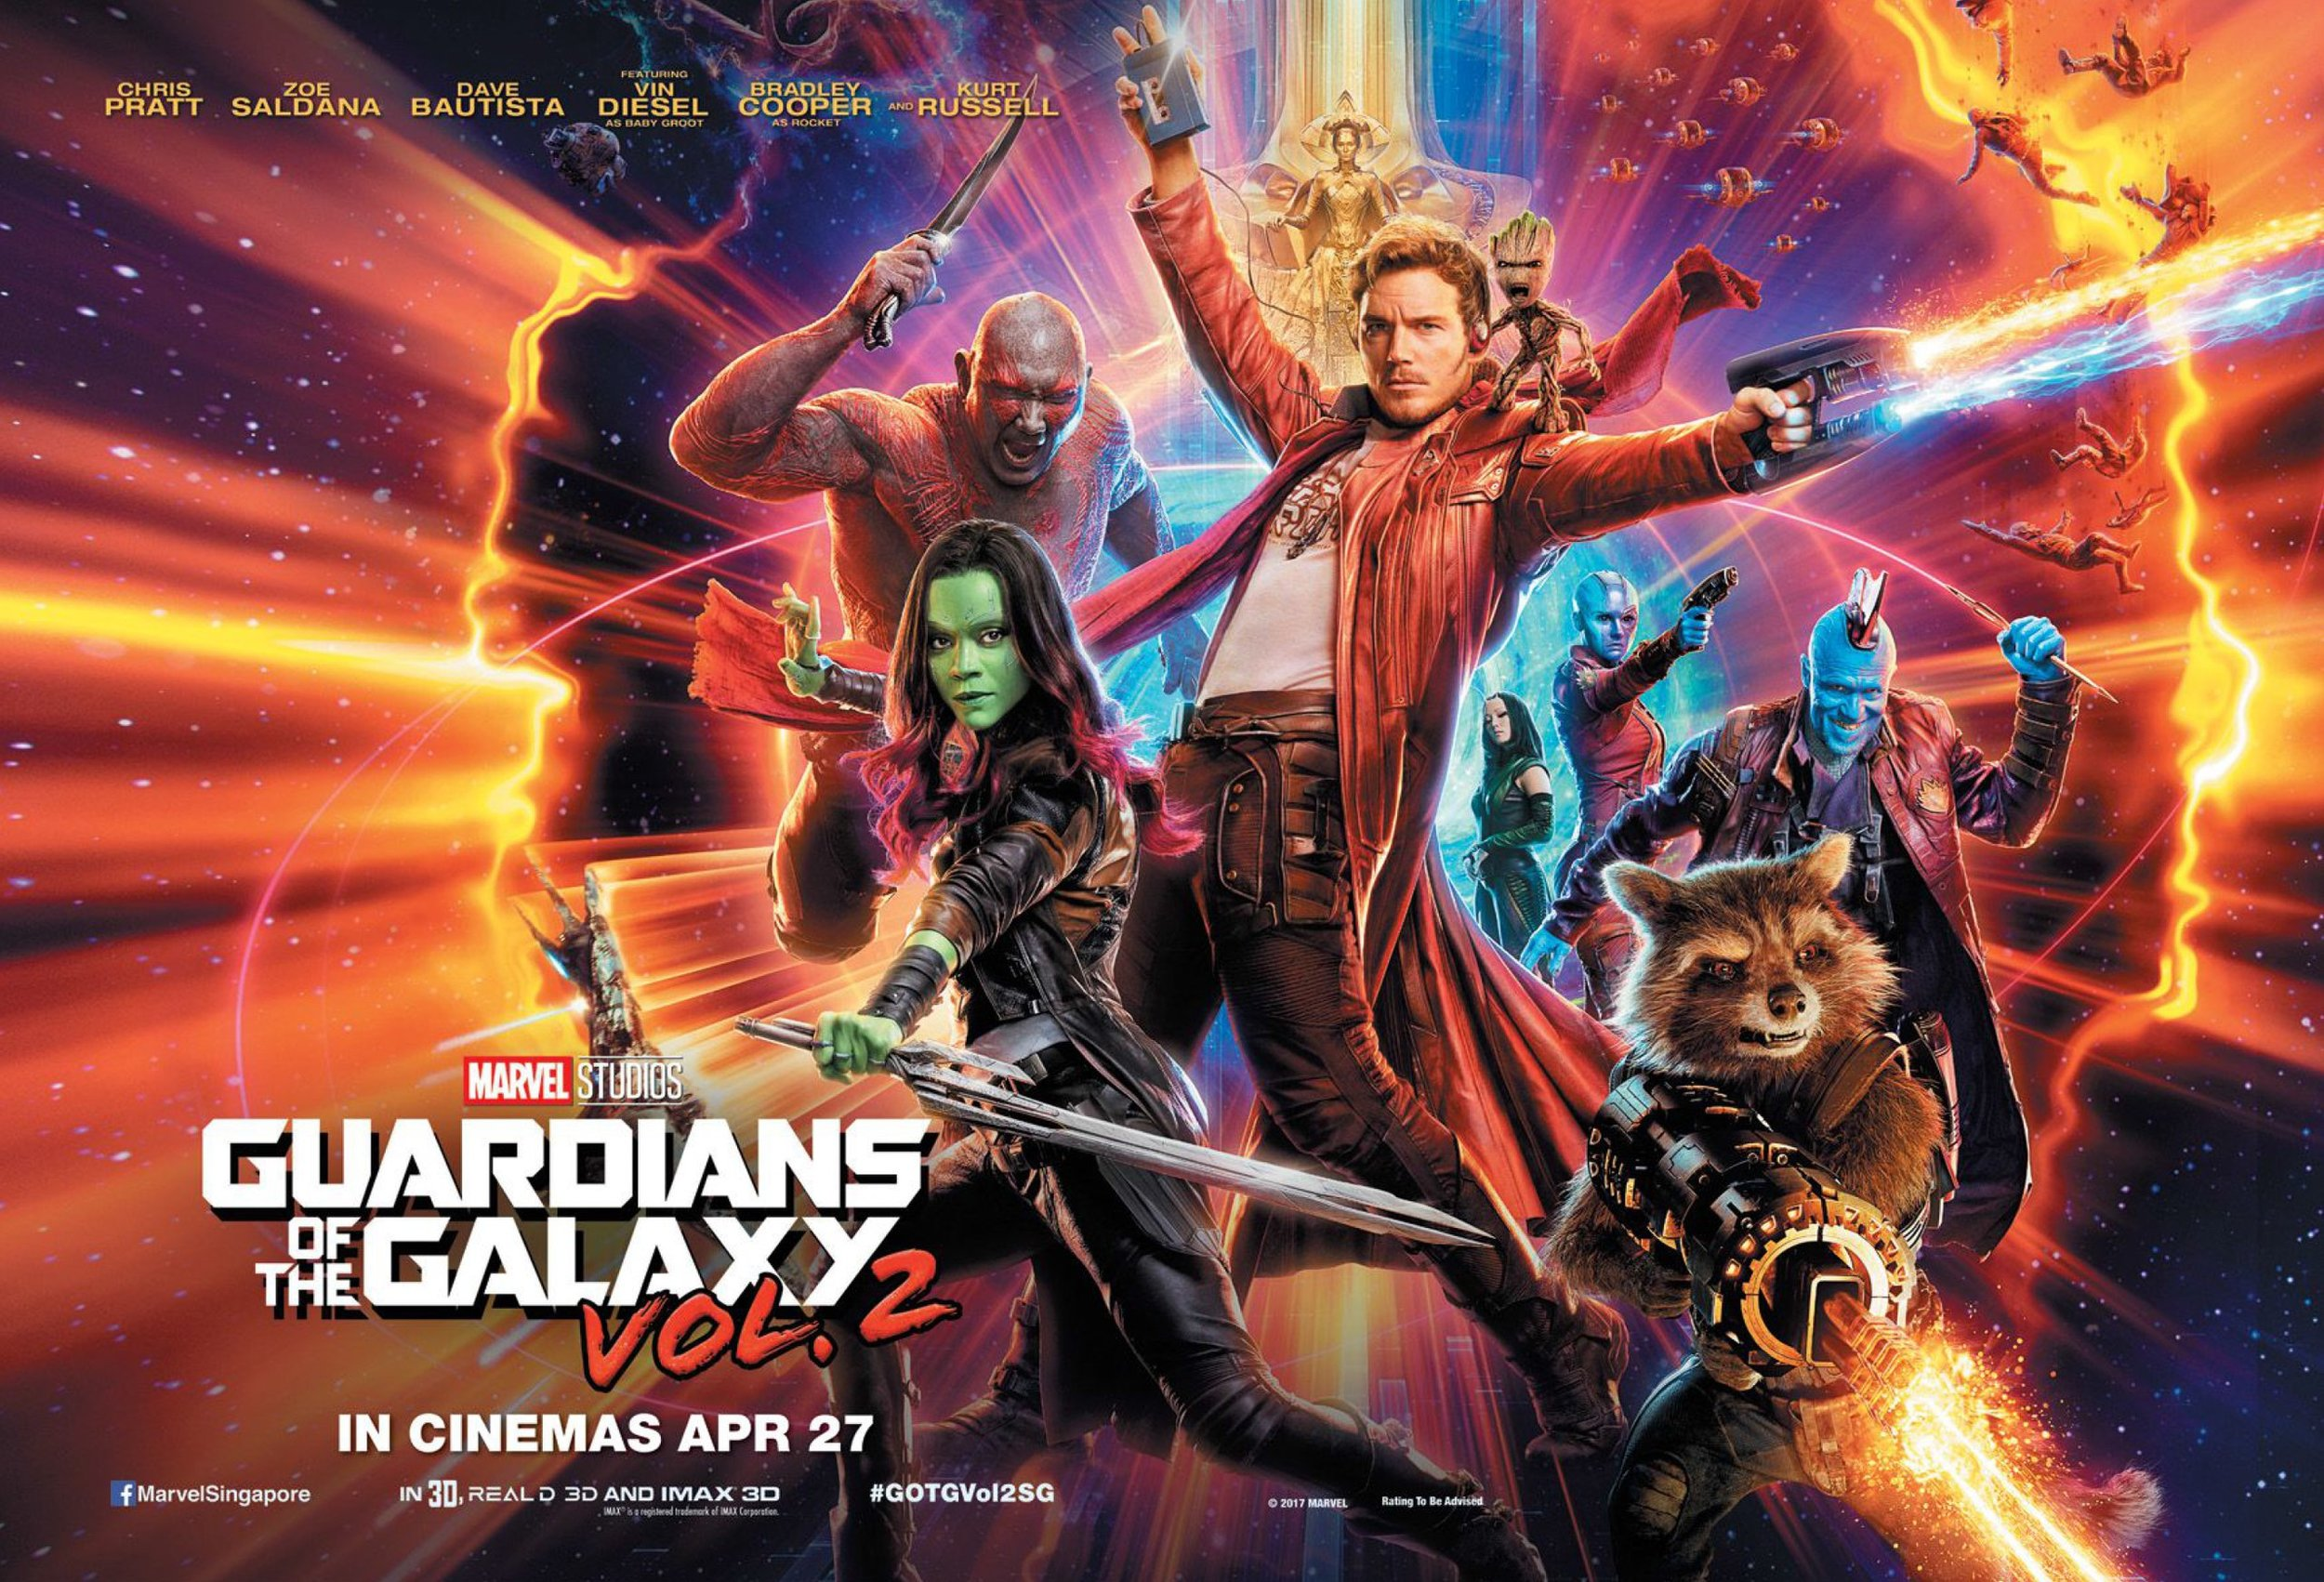 Guardians_Of_The_Galaxy_Vol_2_Official_Poster_Landscape.jpg